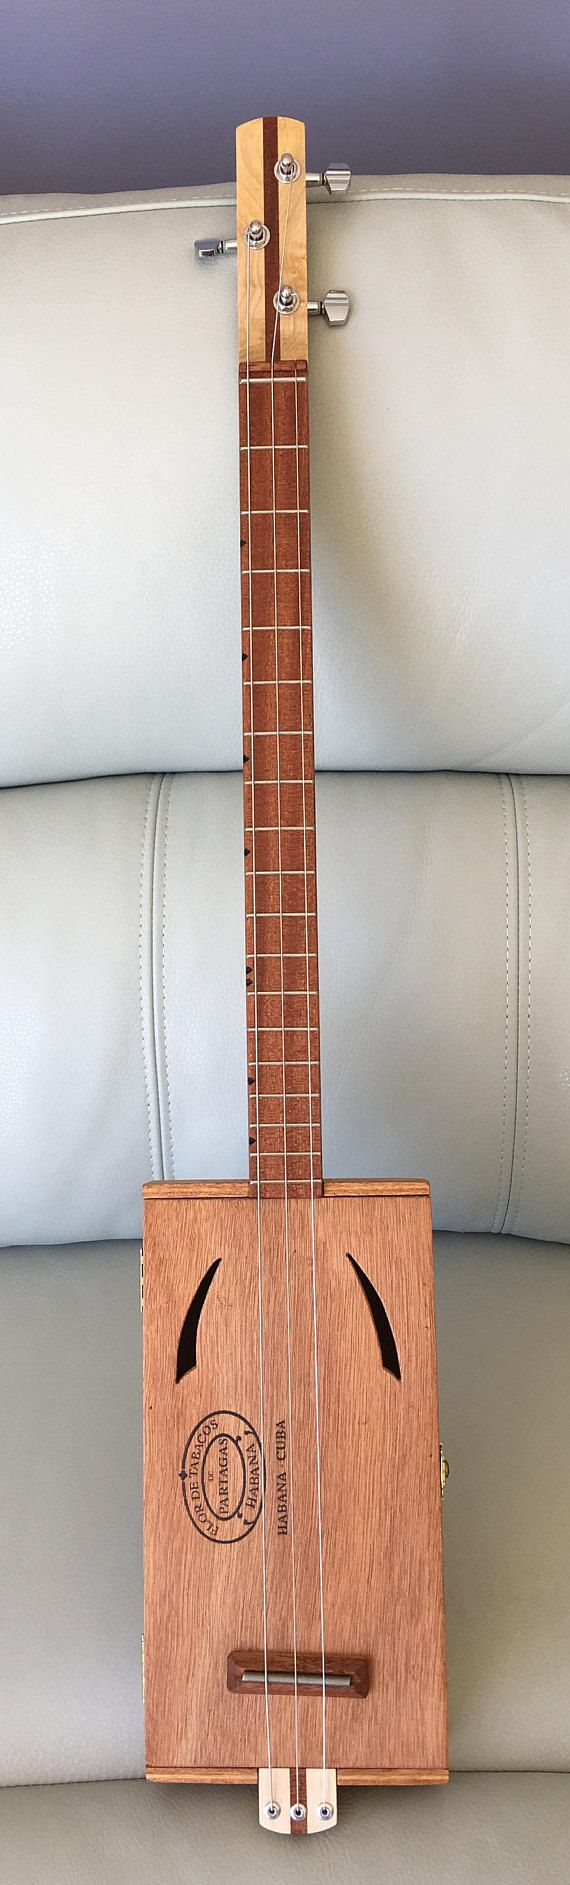 Best 20 Cigar Box Guitar Ideas On Pinterest Cigar Box